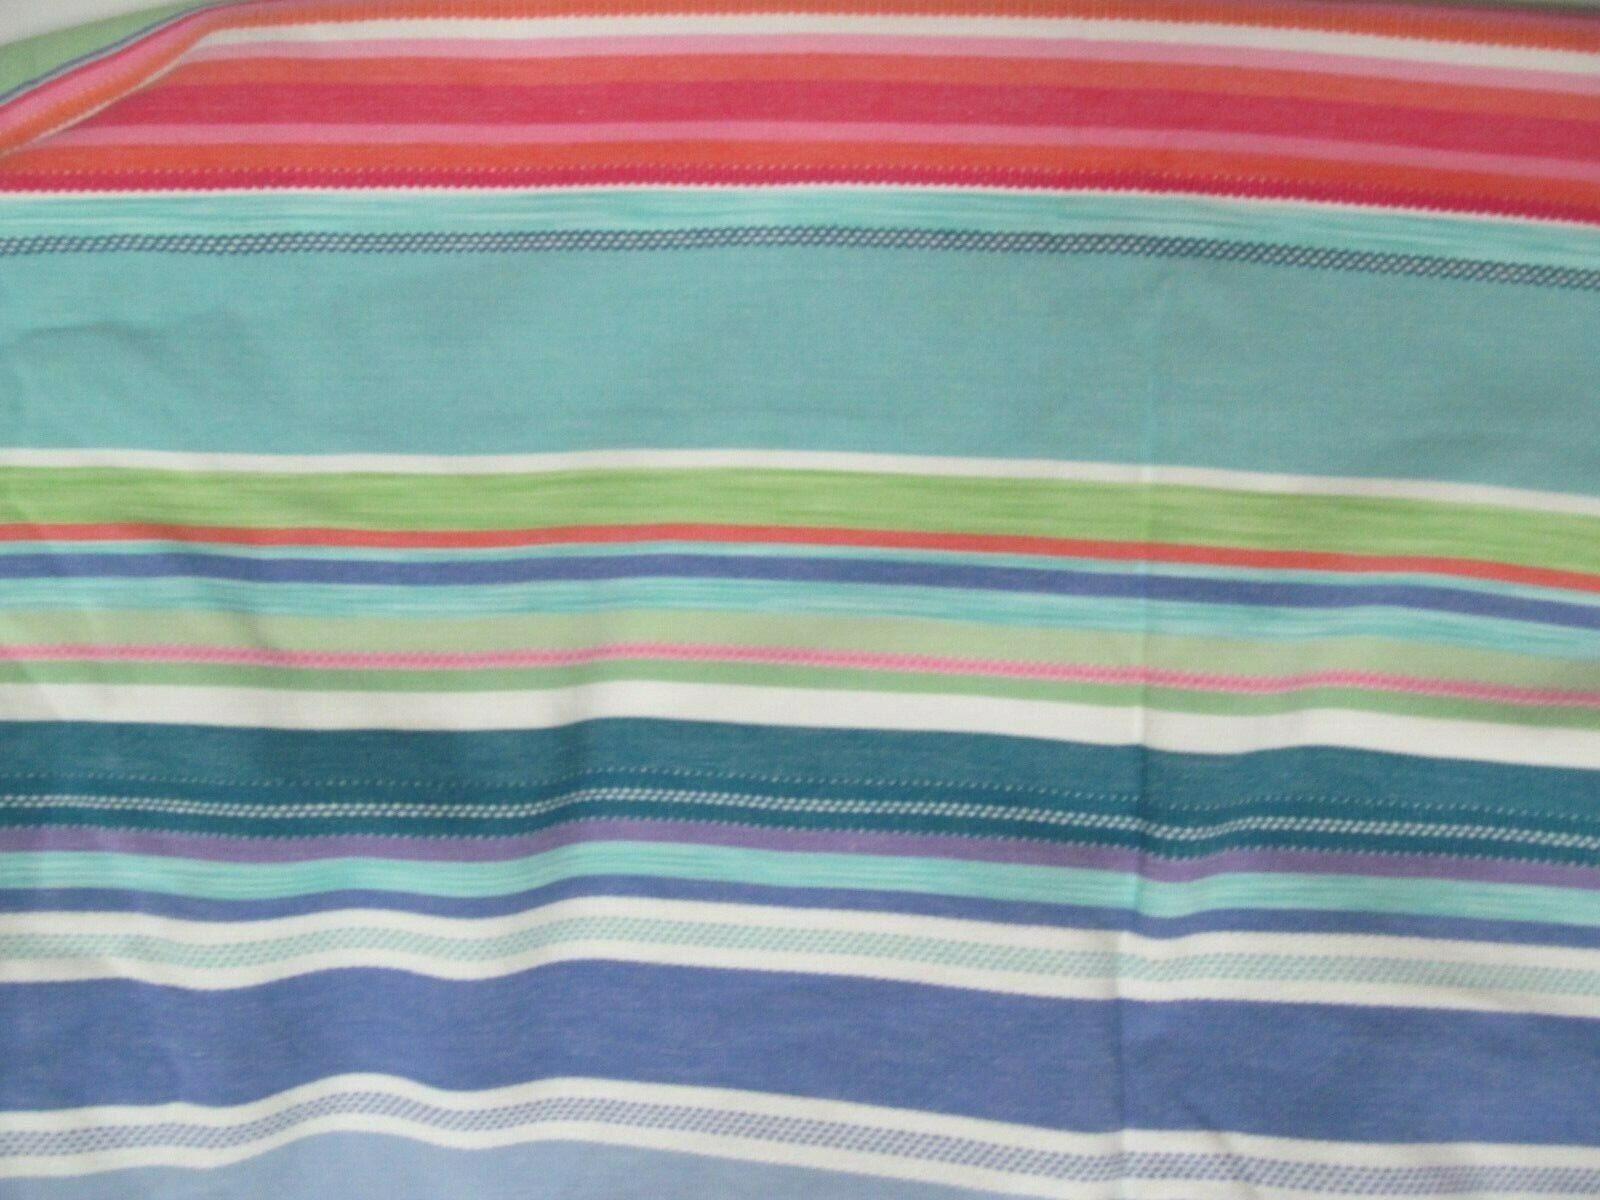 Pottery Barn Teen Colorful Striped Twin Duvet Cover Heavy Duty Cotton Wahine - $48.99